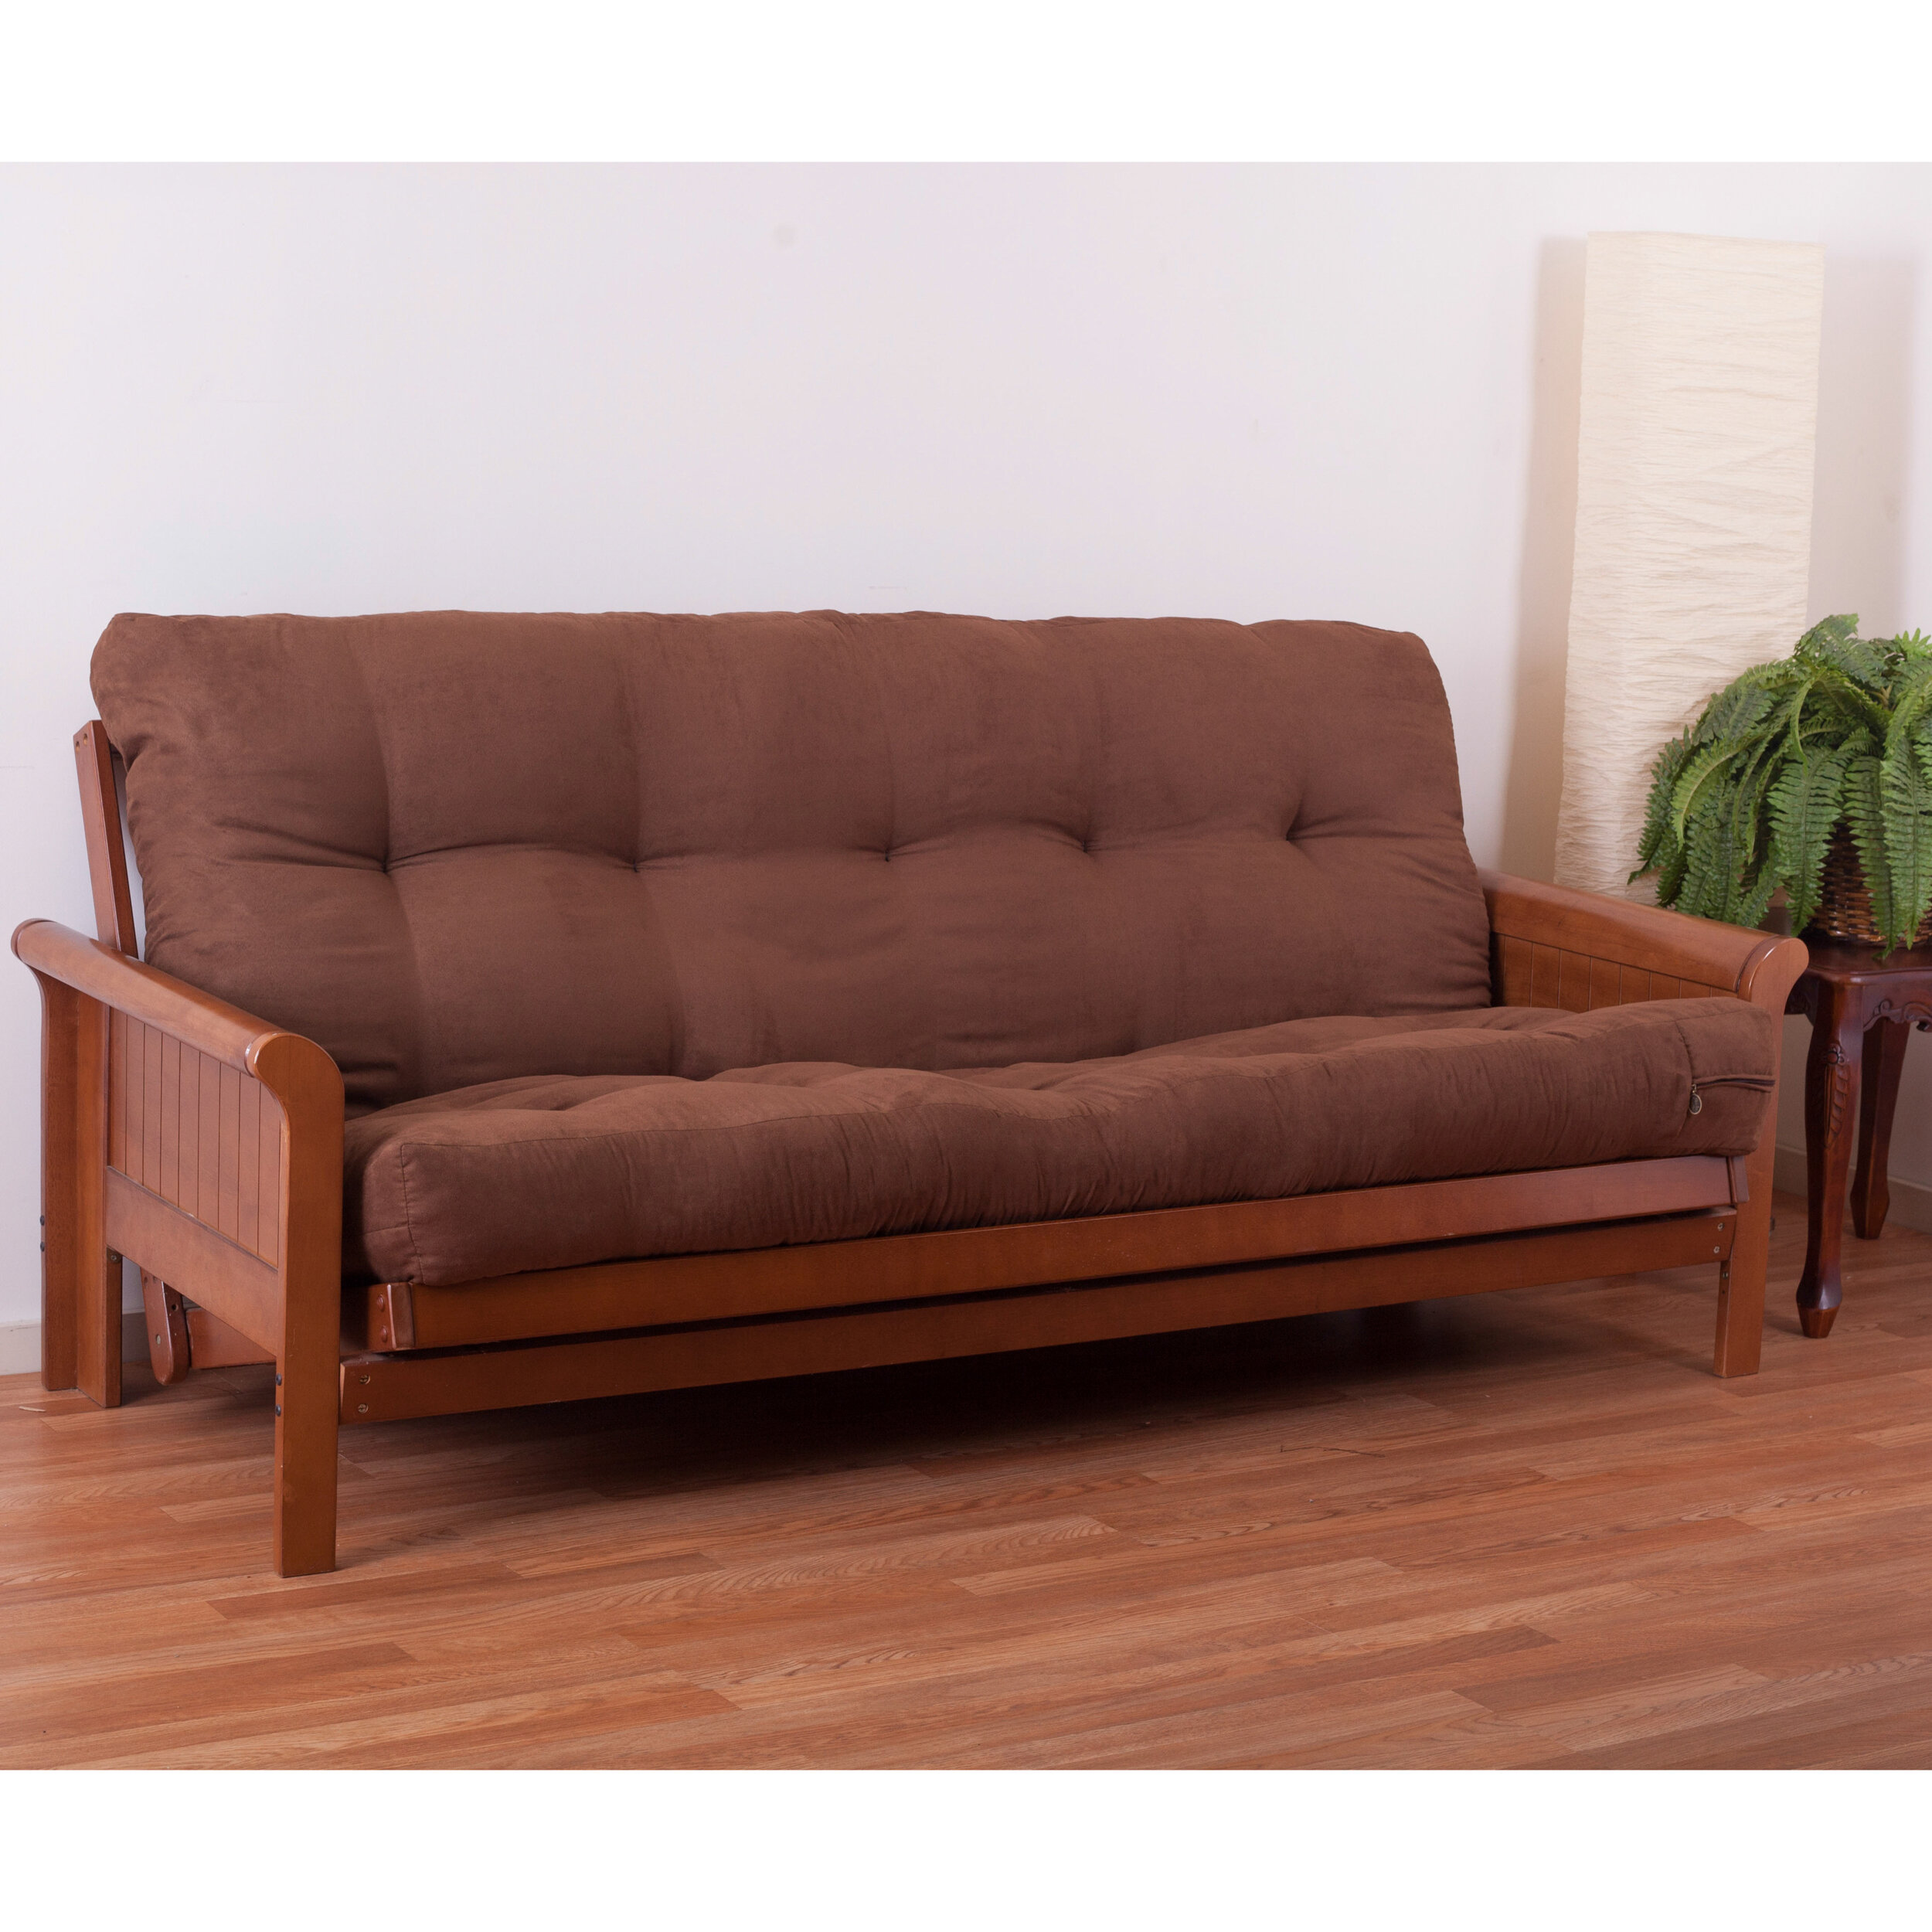 futon sofa for images bed singular with on couches trundle sale beds reading undersofa photo design or best room about